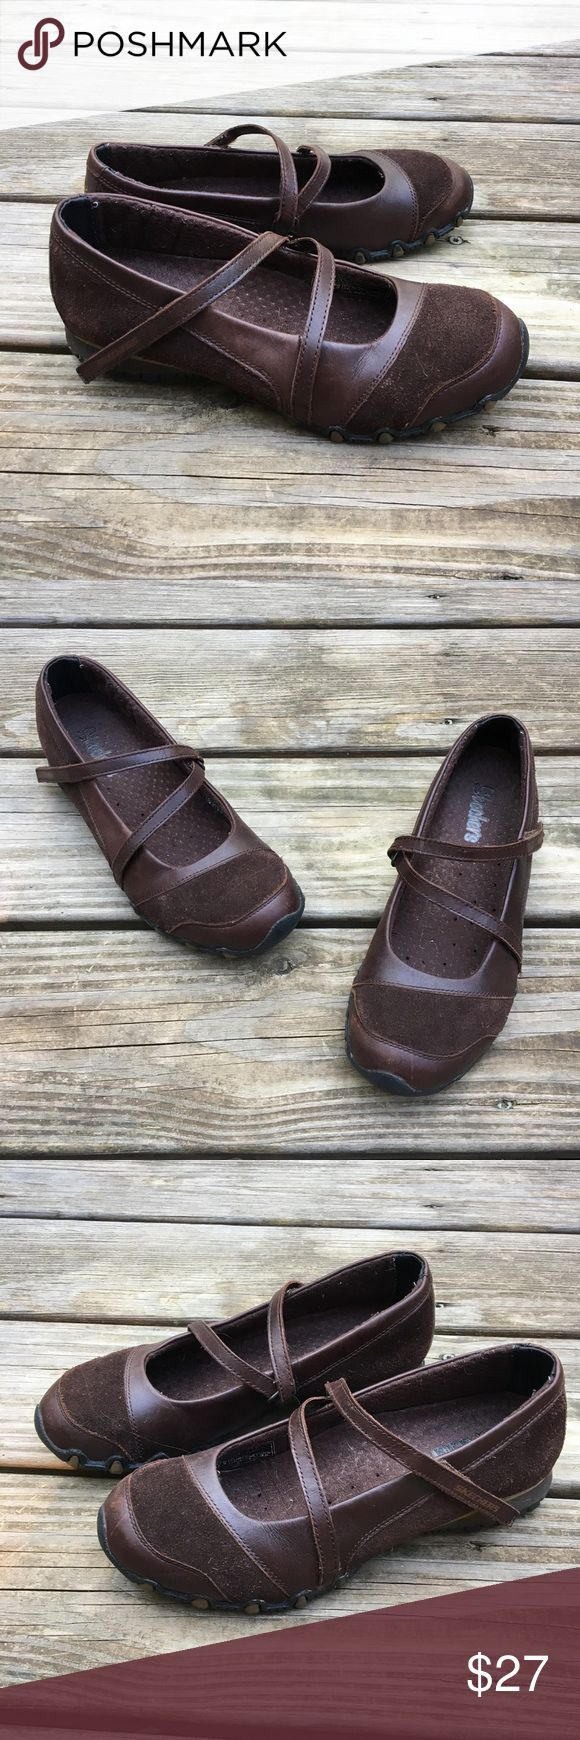 Skechers Comfy Mary Janes These brown Mary Janes are soooo comfy and made like sneakers! They are in excellent condition with very little sign of wear. Size 6.5 regular. Reasonable offers welcome Skechers Shoes